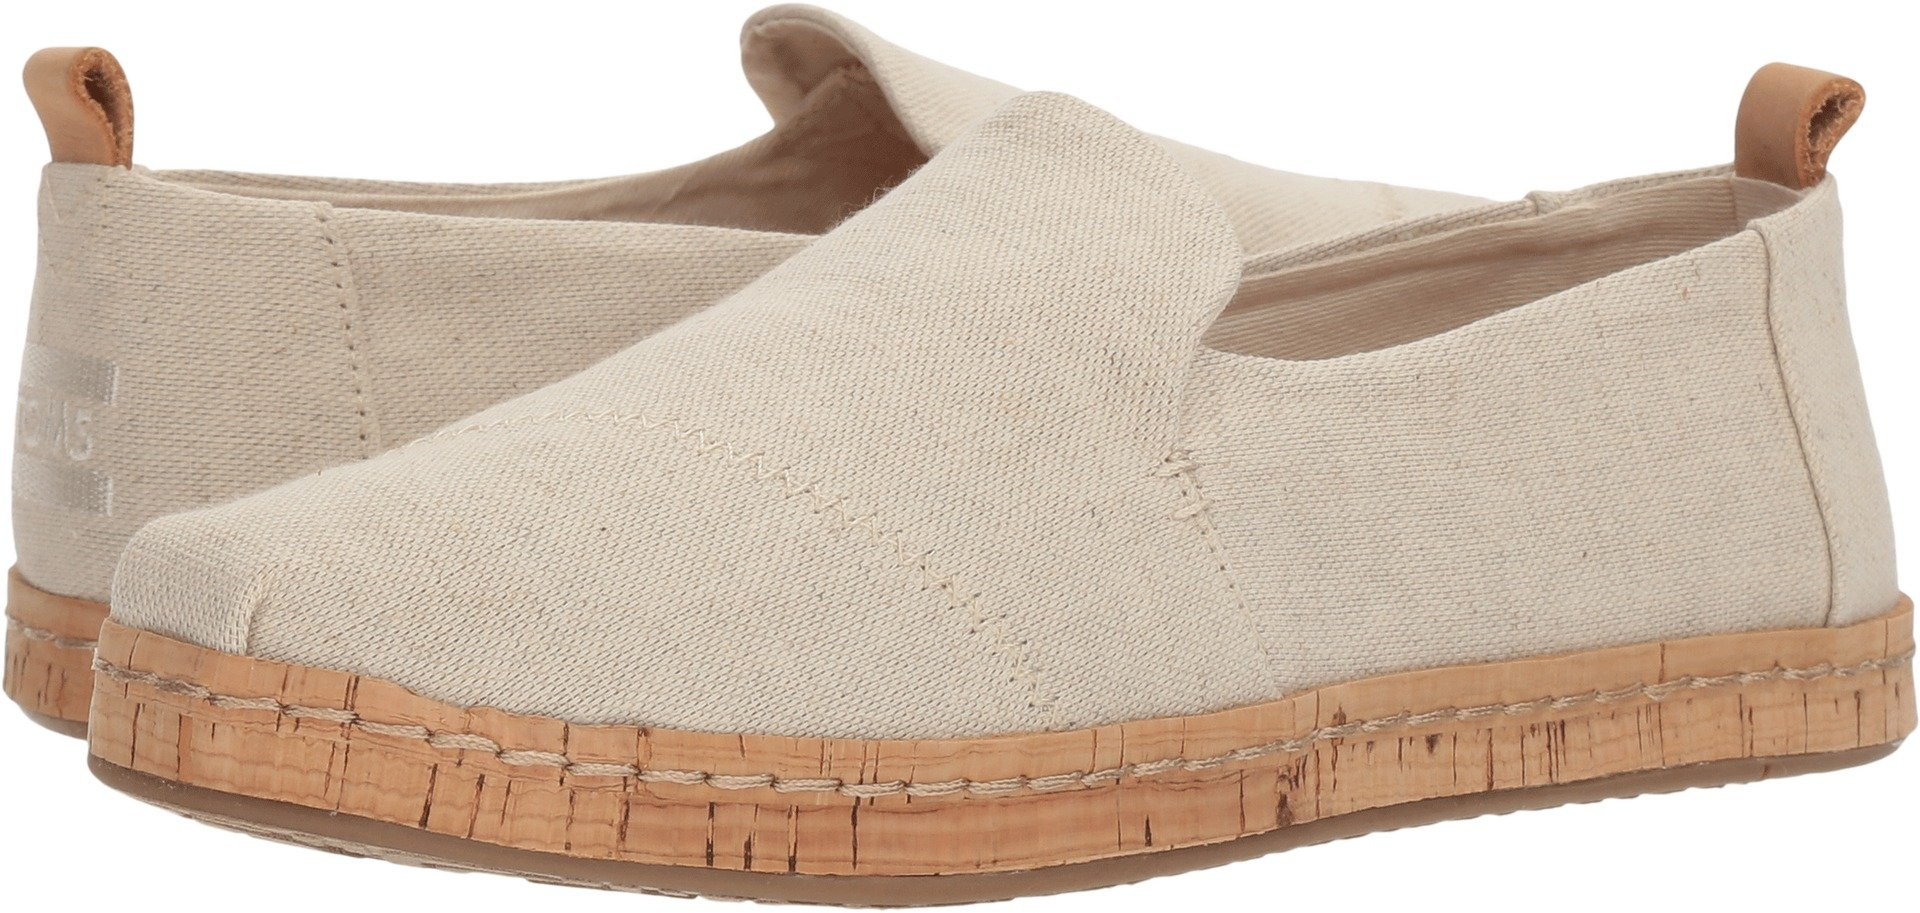 TOMS Women's Deconstructed Alpargata Natural Hemp 7 B US